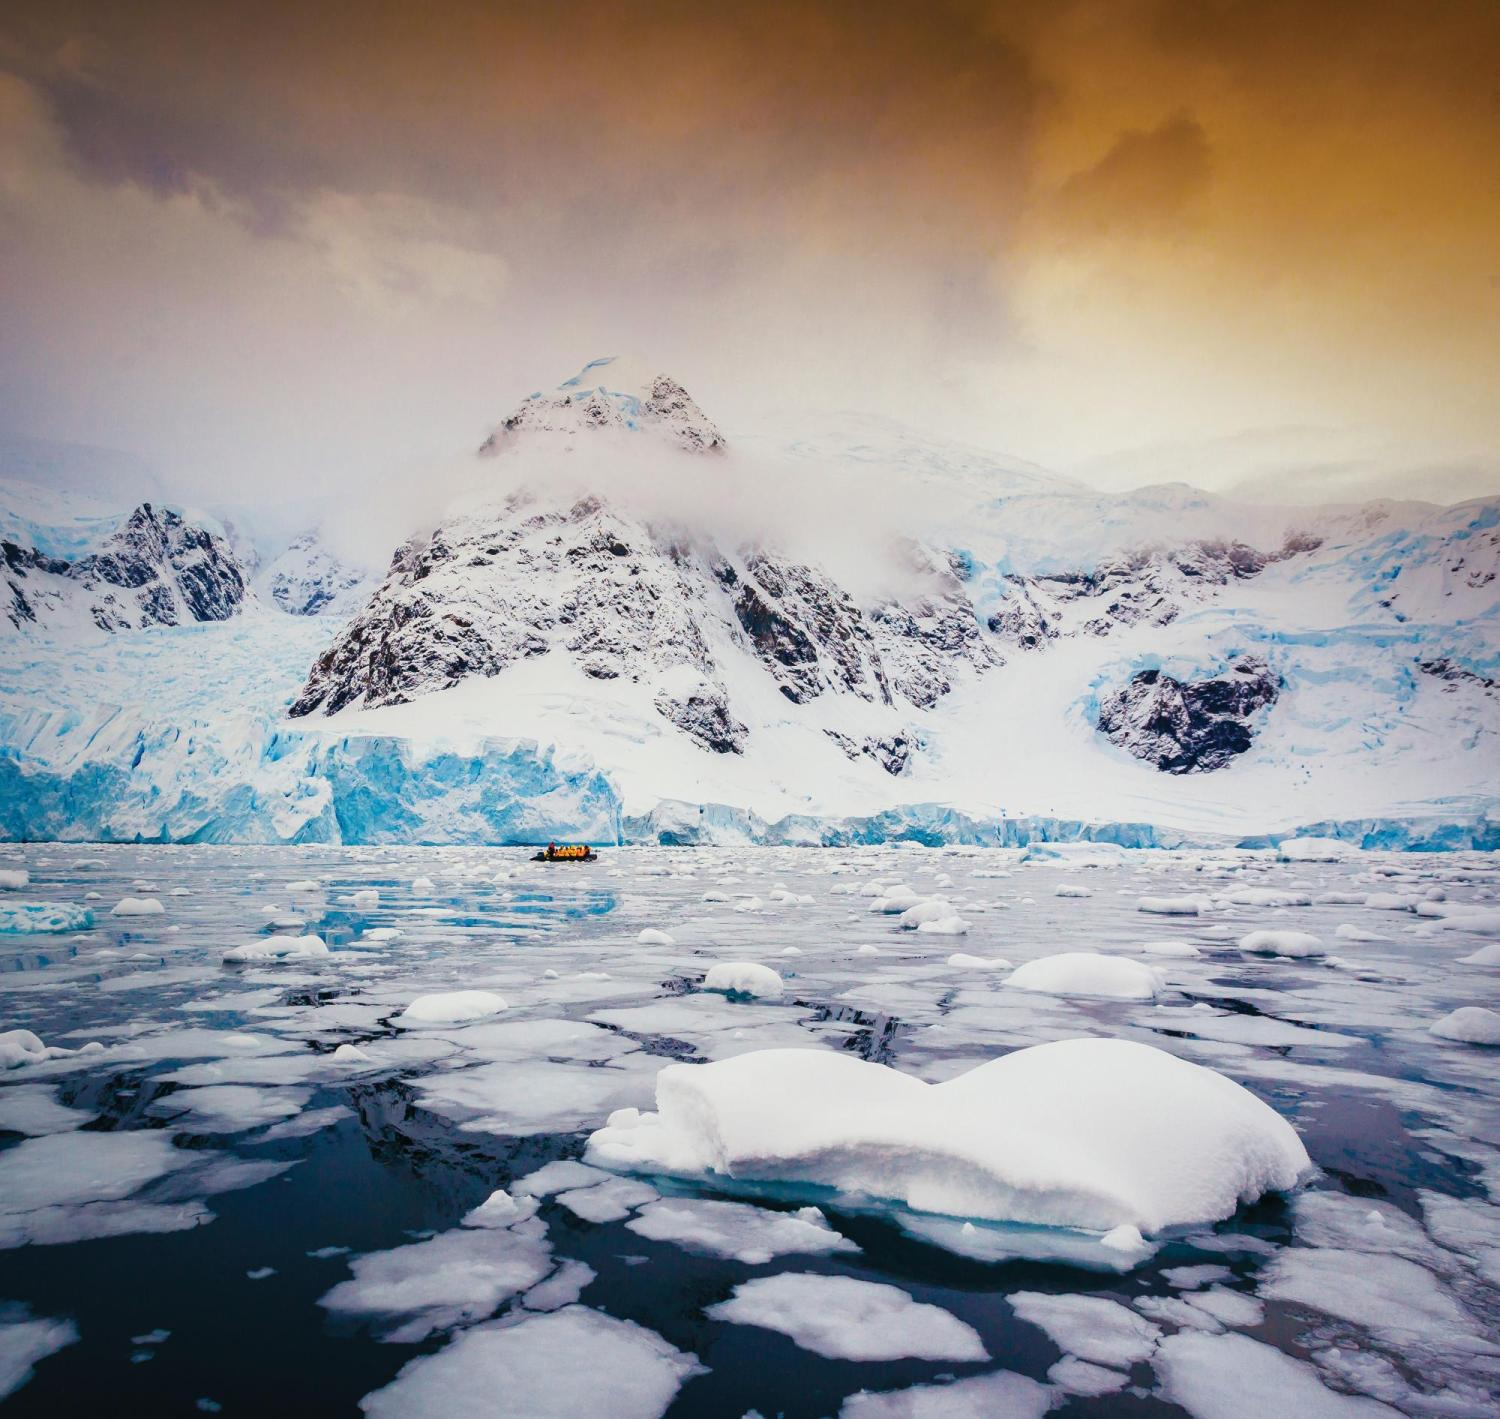 Landscape shot of Antarctica at sunset